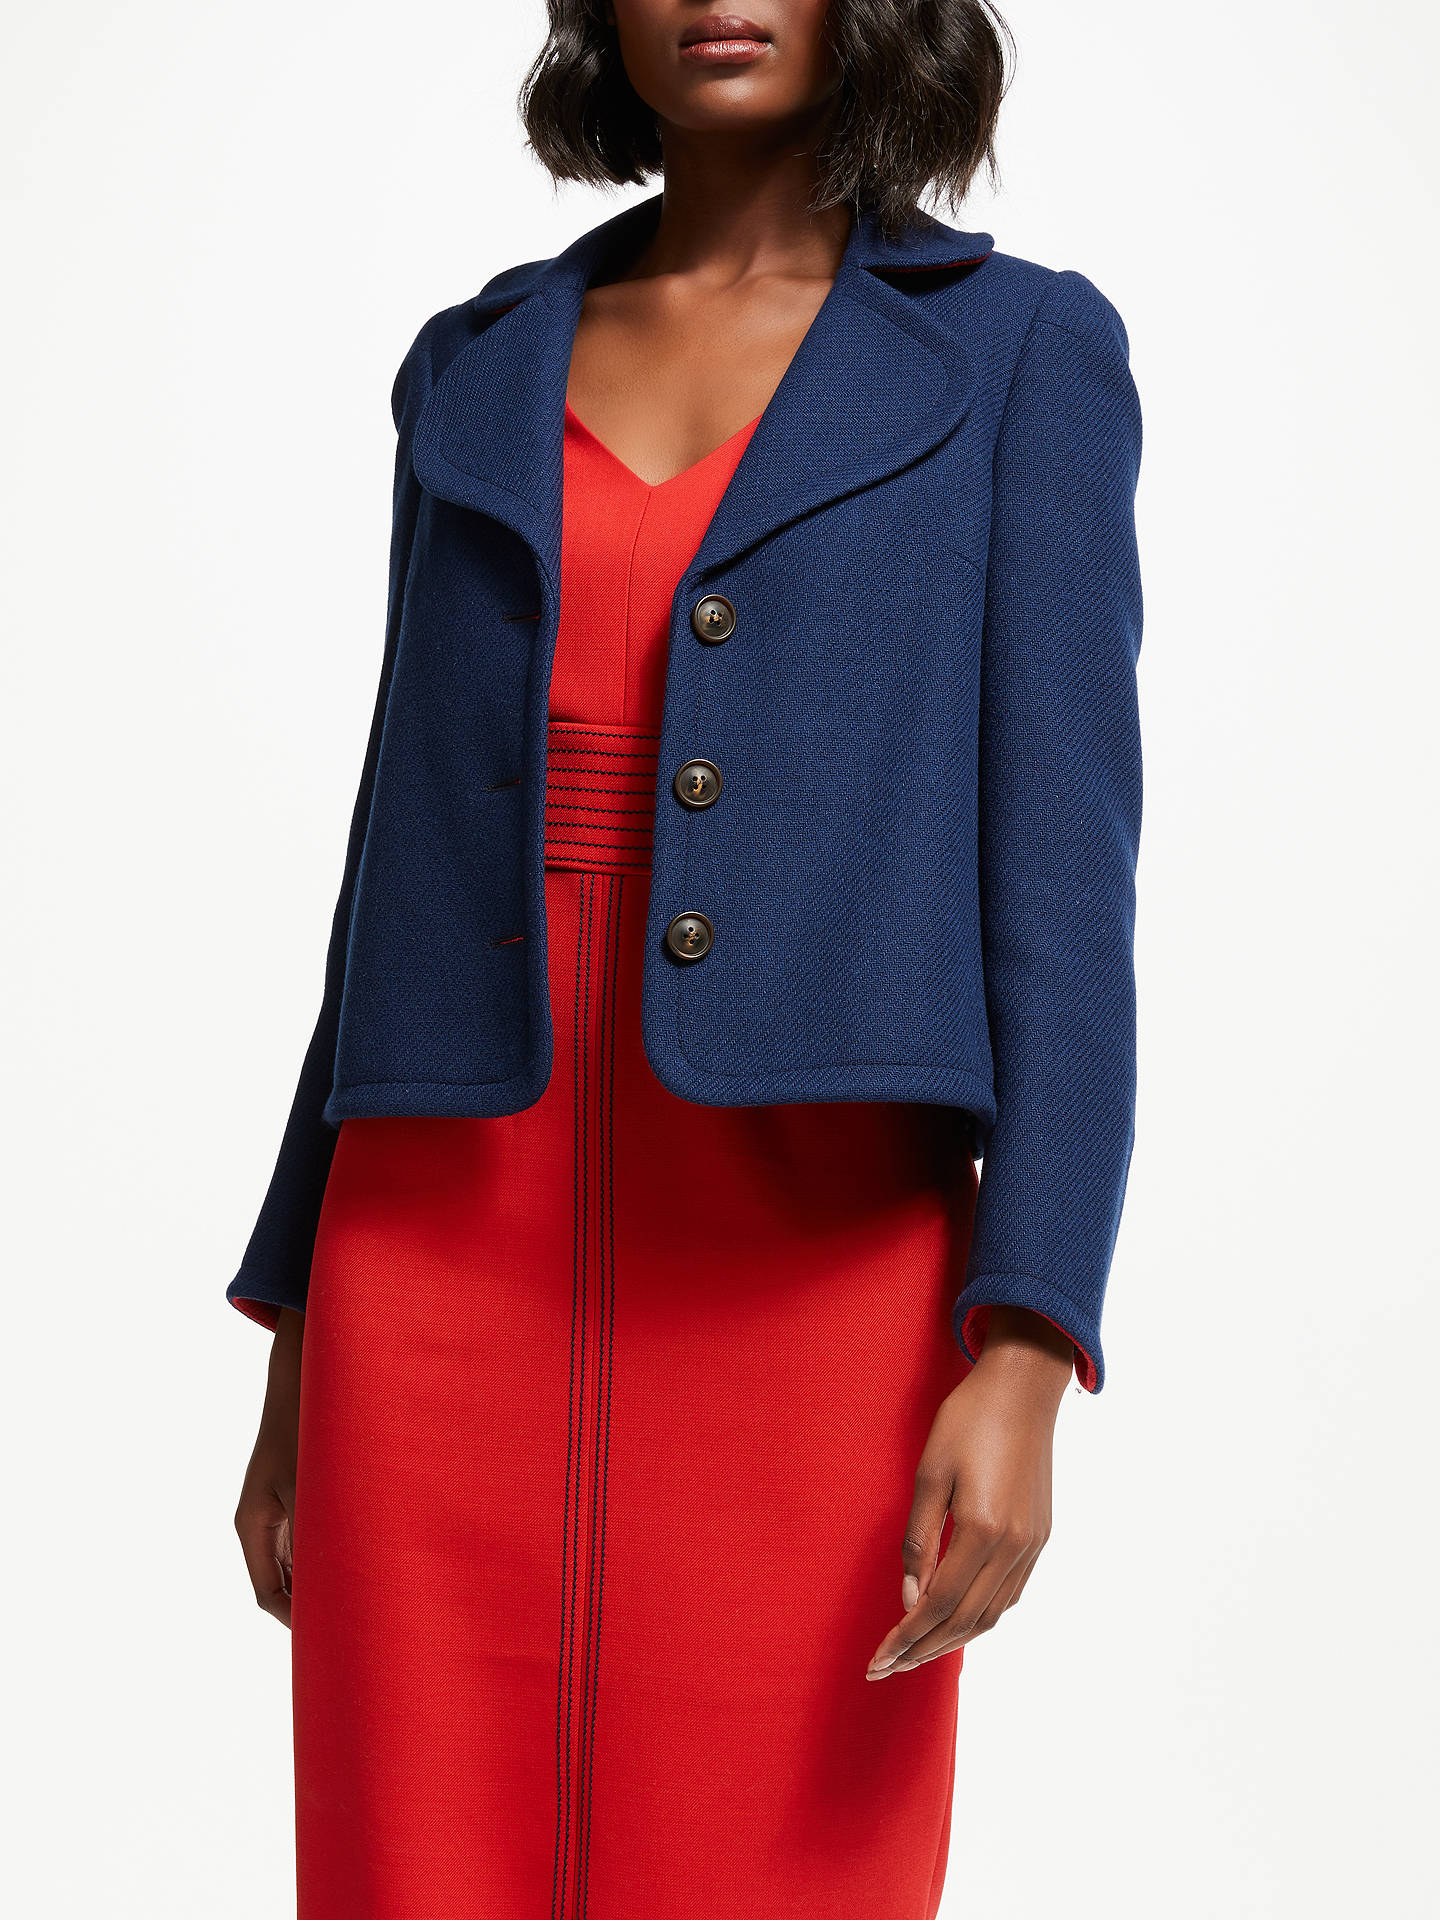 BuyBoden Horsell Jacket, Navy, 10 Online at johnlewis.com